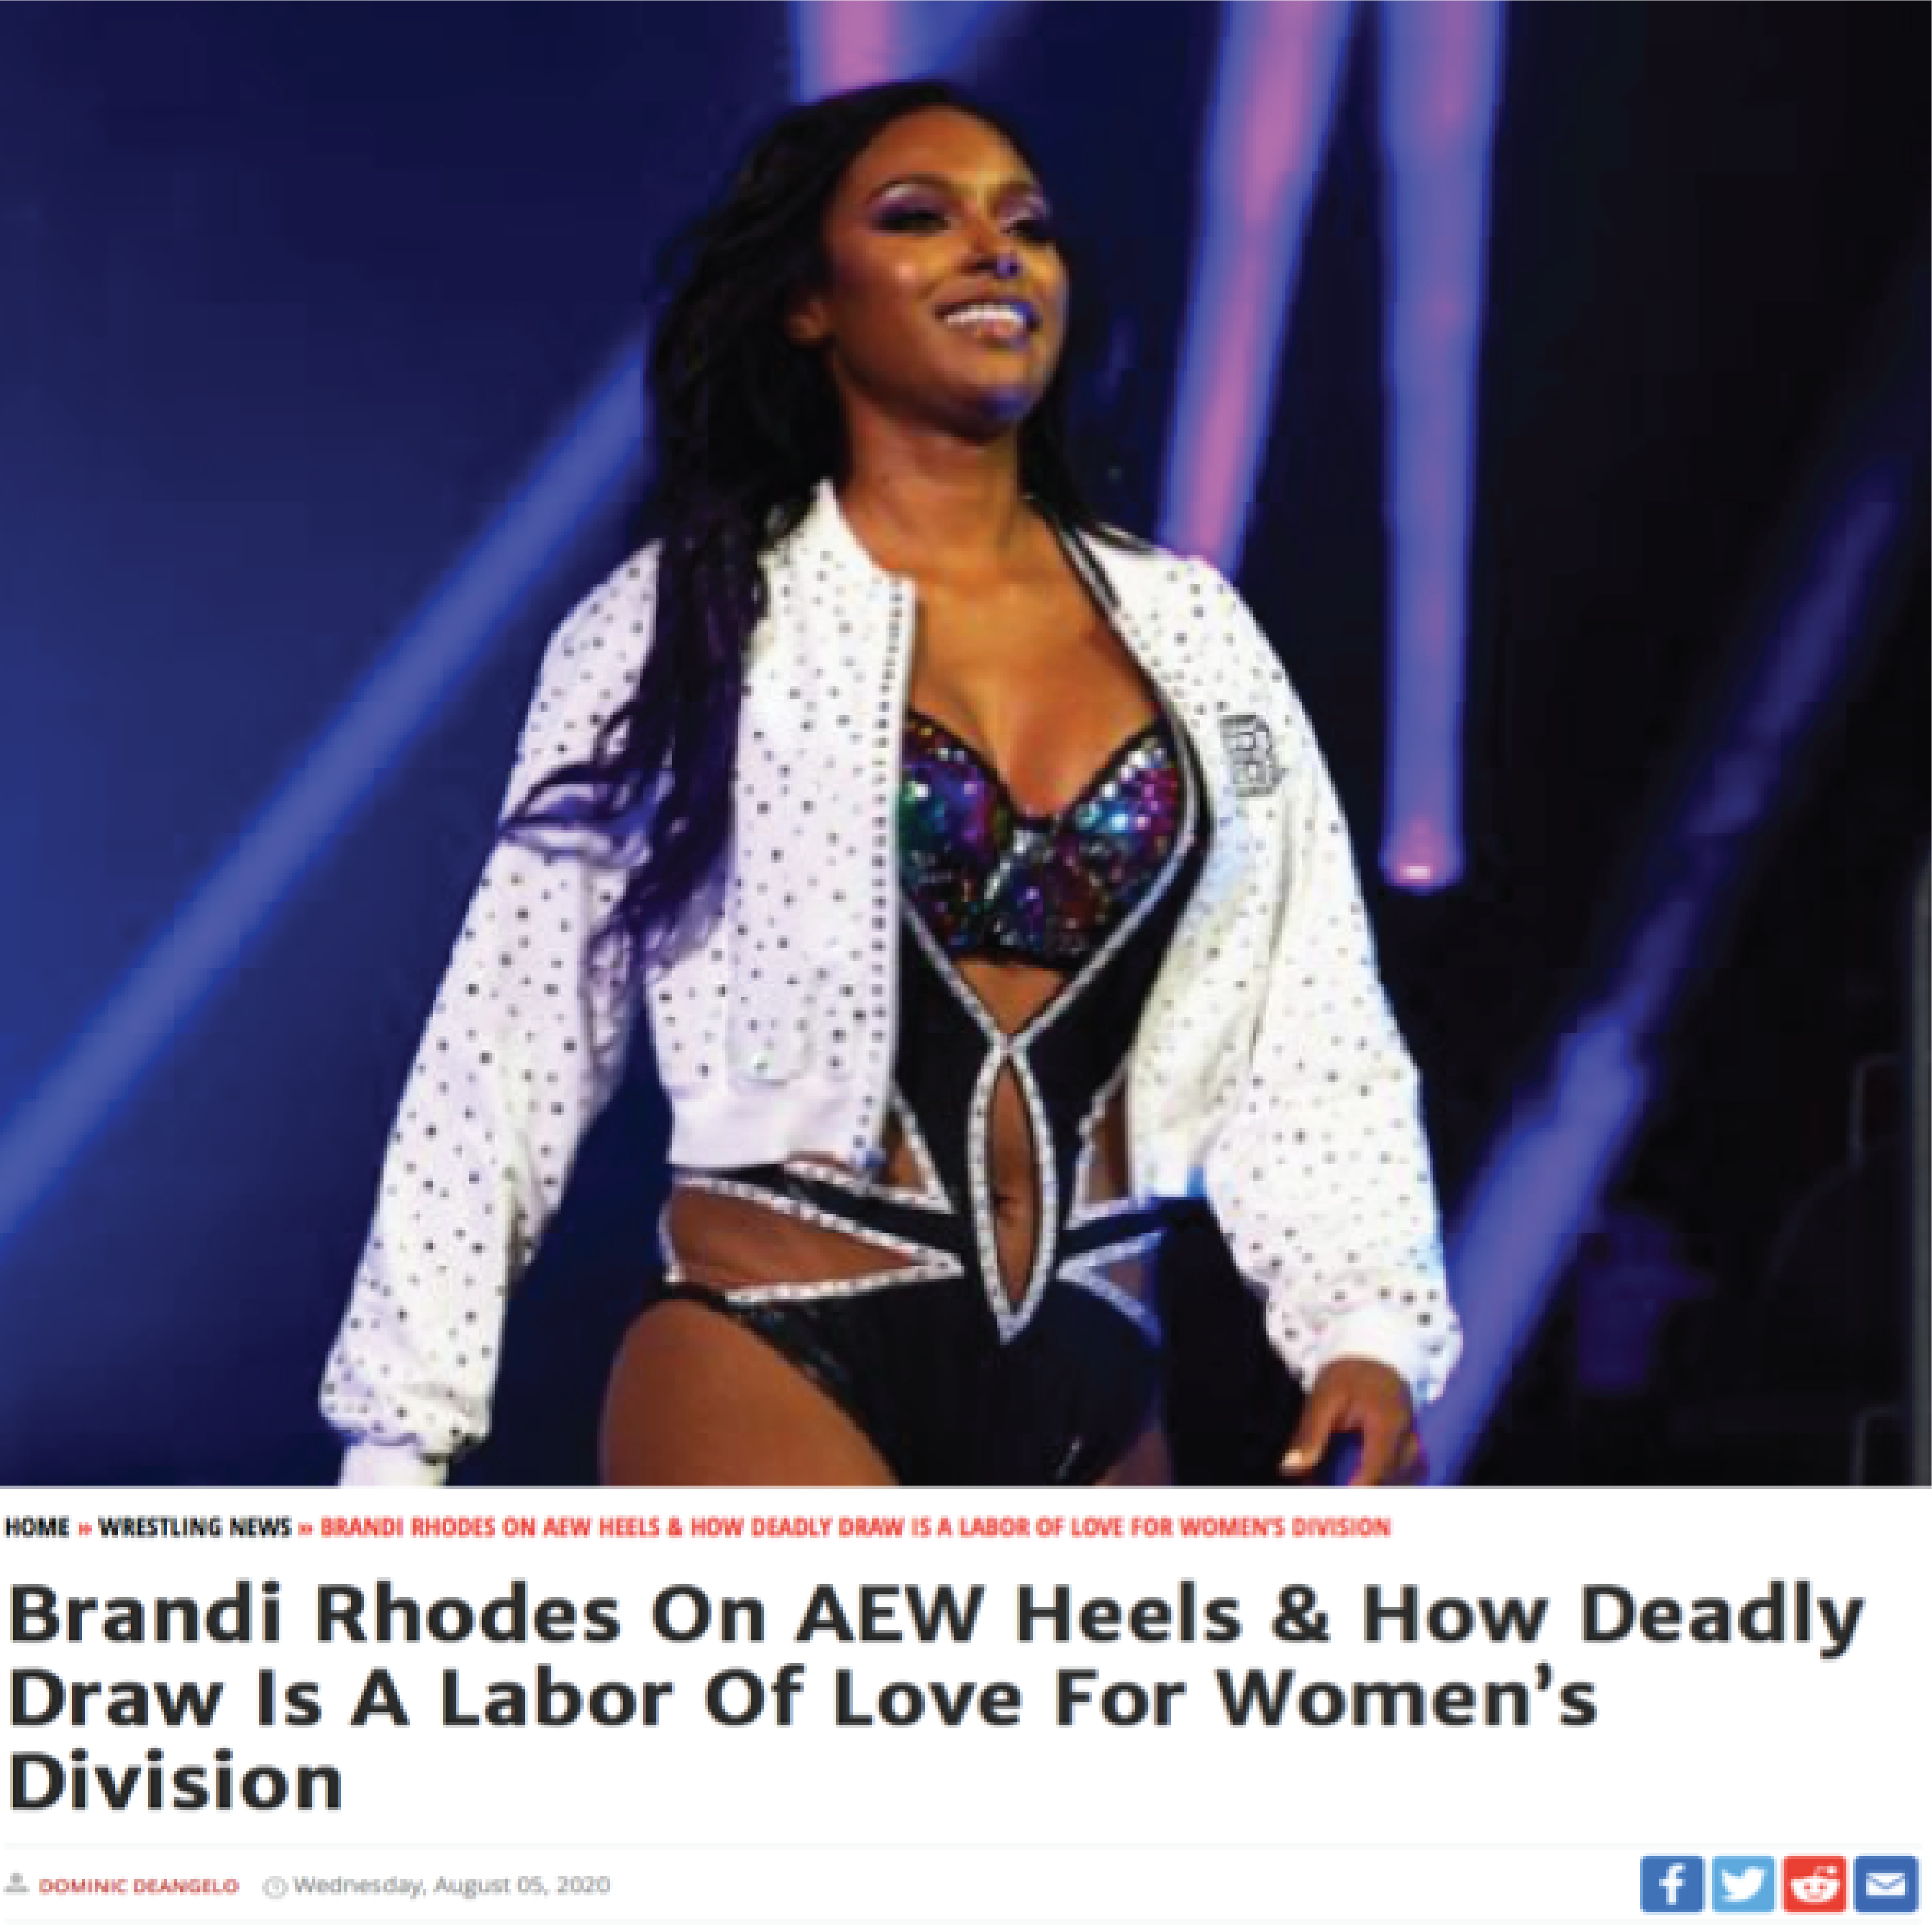 News article image Brandi Rhodes On AEW Heels & How Deadly Draw Is A Labor Of Love For Women's Division